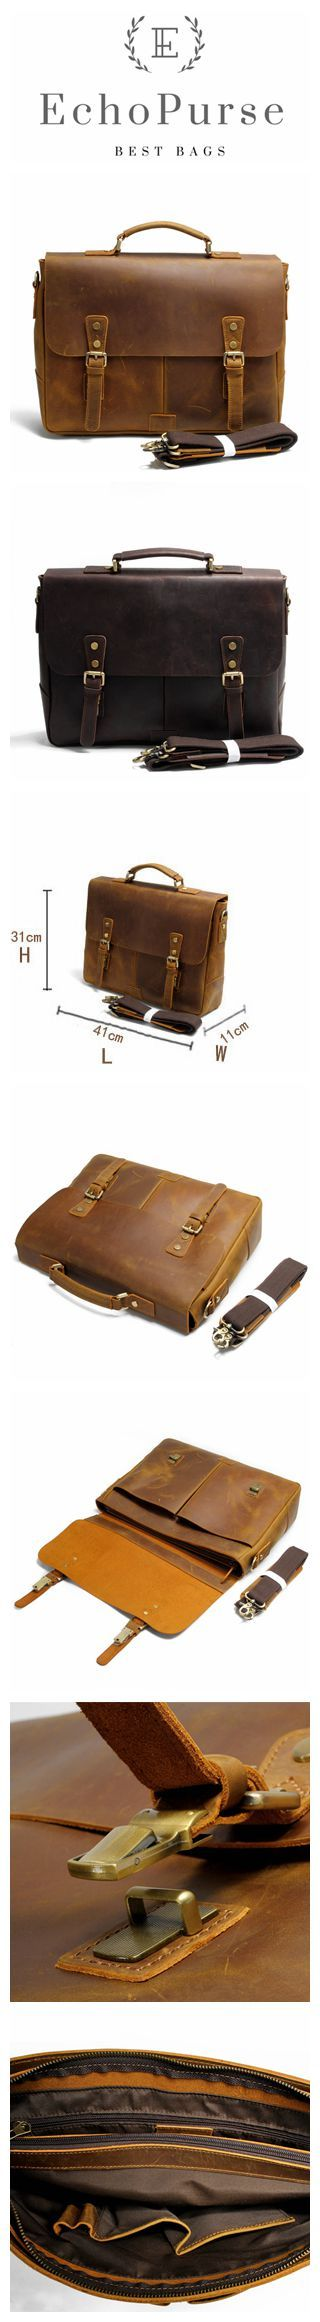 Top Grain Leather Men's Handbag, Shoulder Bag, Vintage Laptop Bag 68048